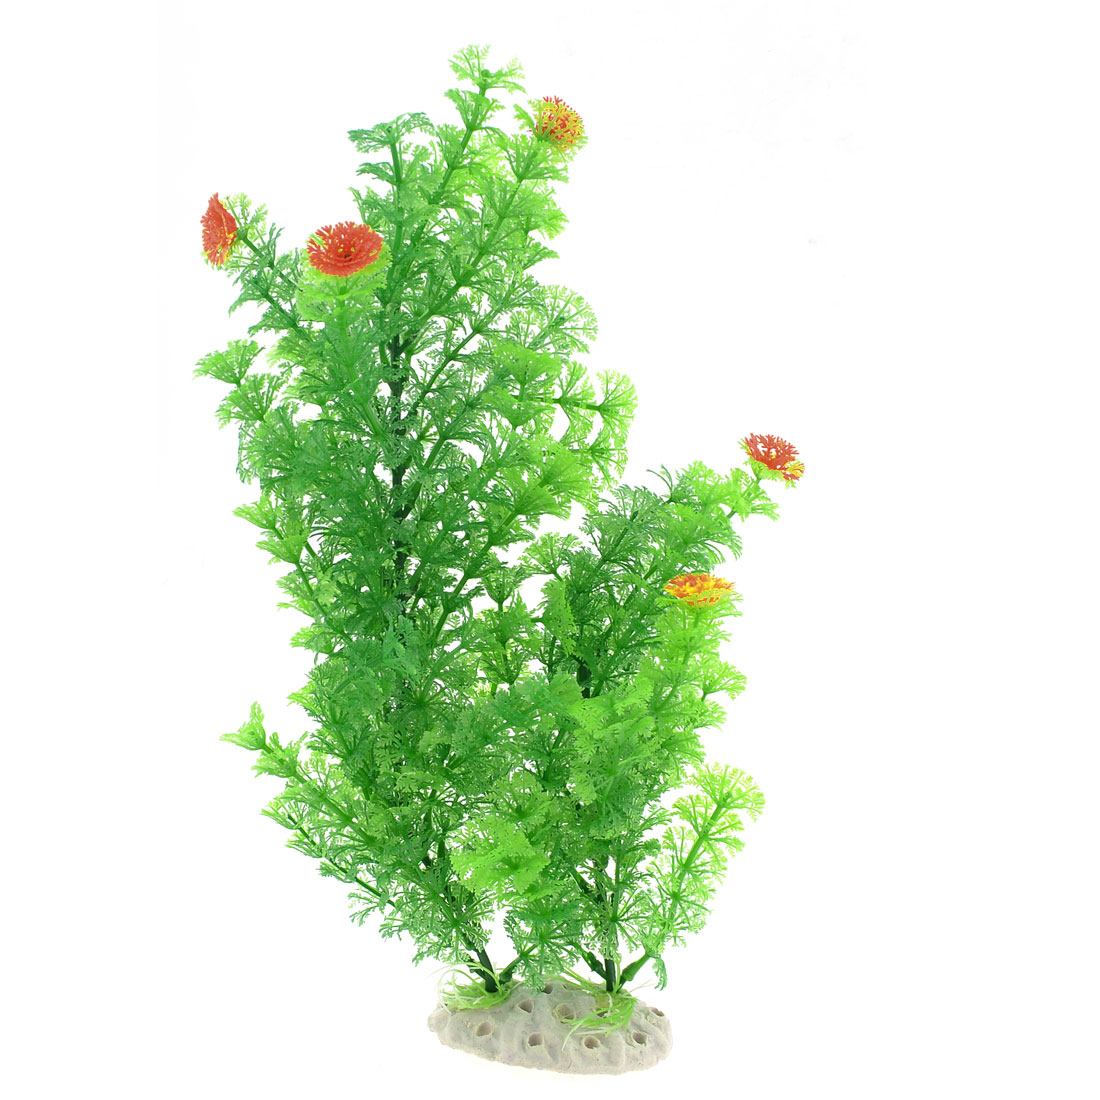 Fish Tank Aquarium Green Plastic Snowflake Shape Leaves Plants Grass 15.4""